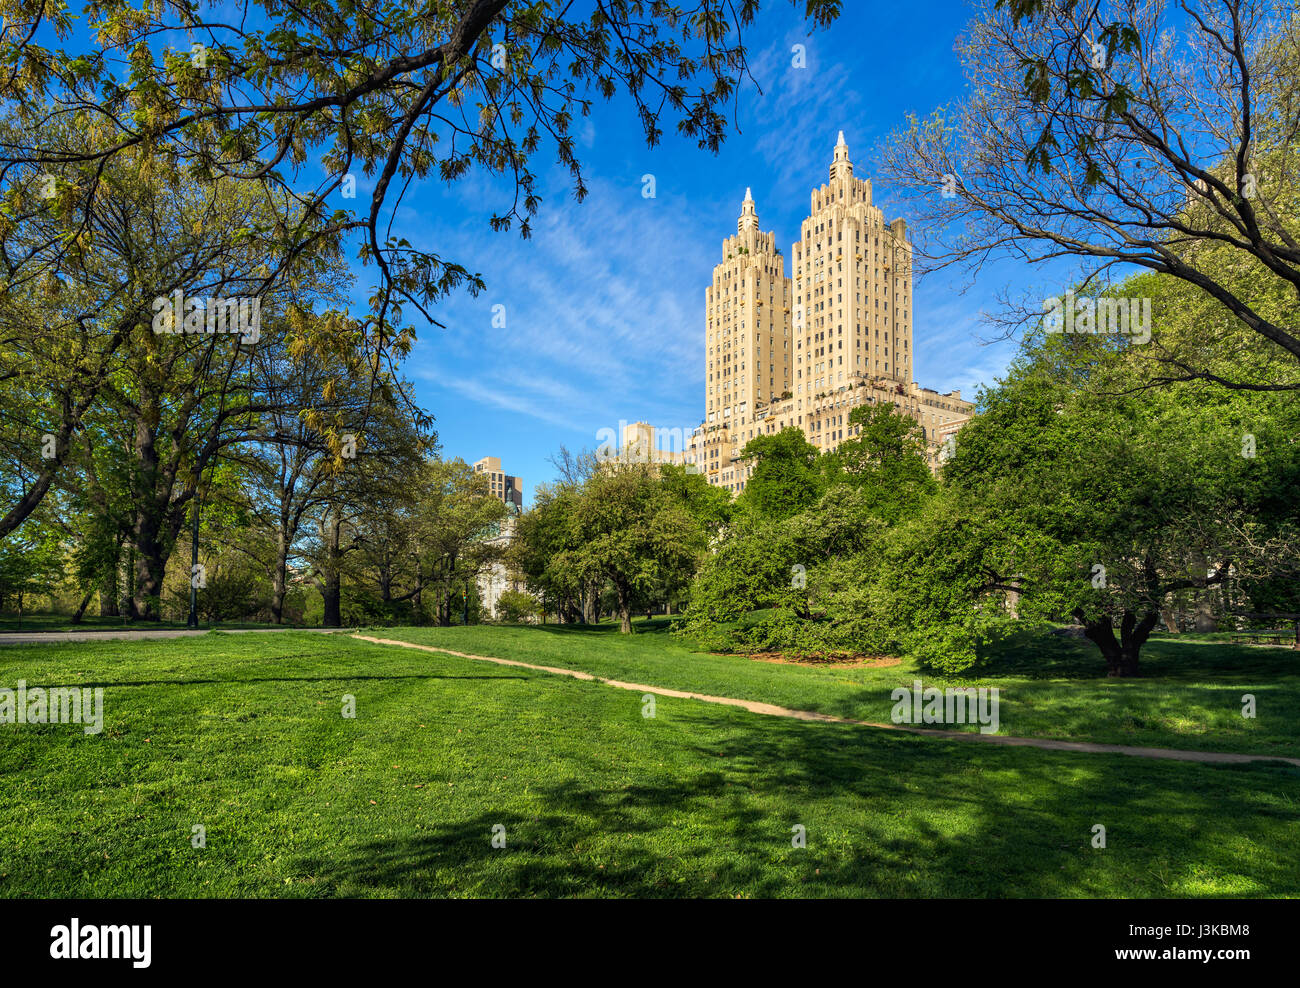 Central Park West Summer morning with Art Deco high-rise building. Upper West Side, Manhattan, New York City - Stock Image